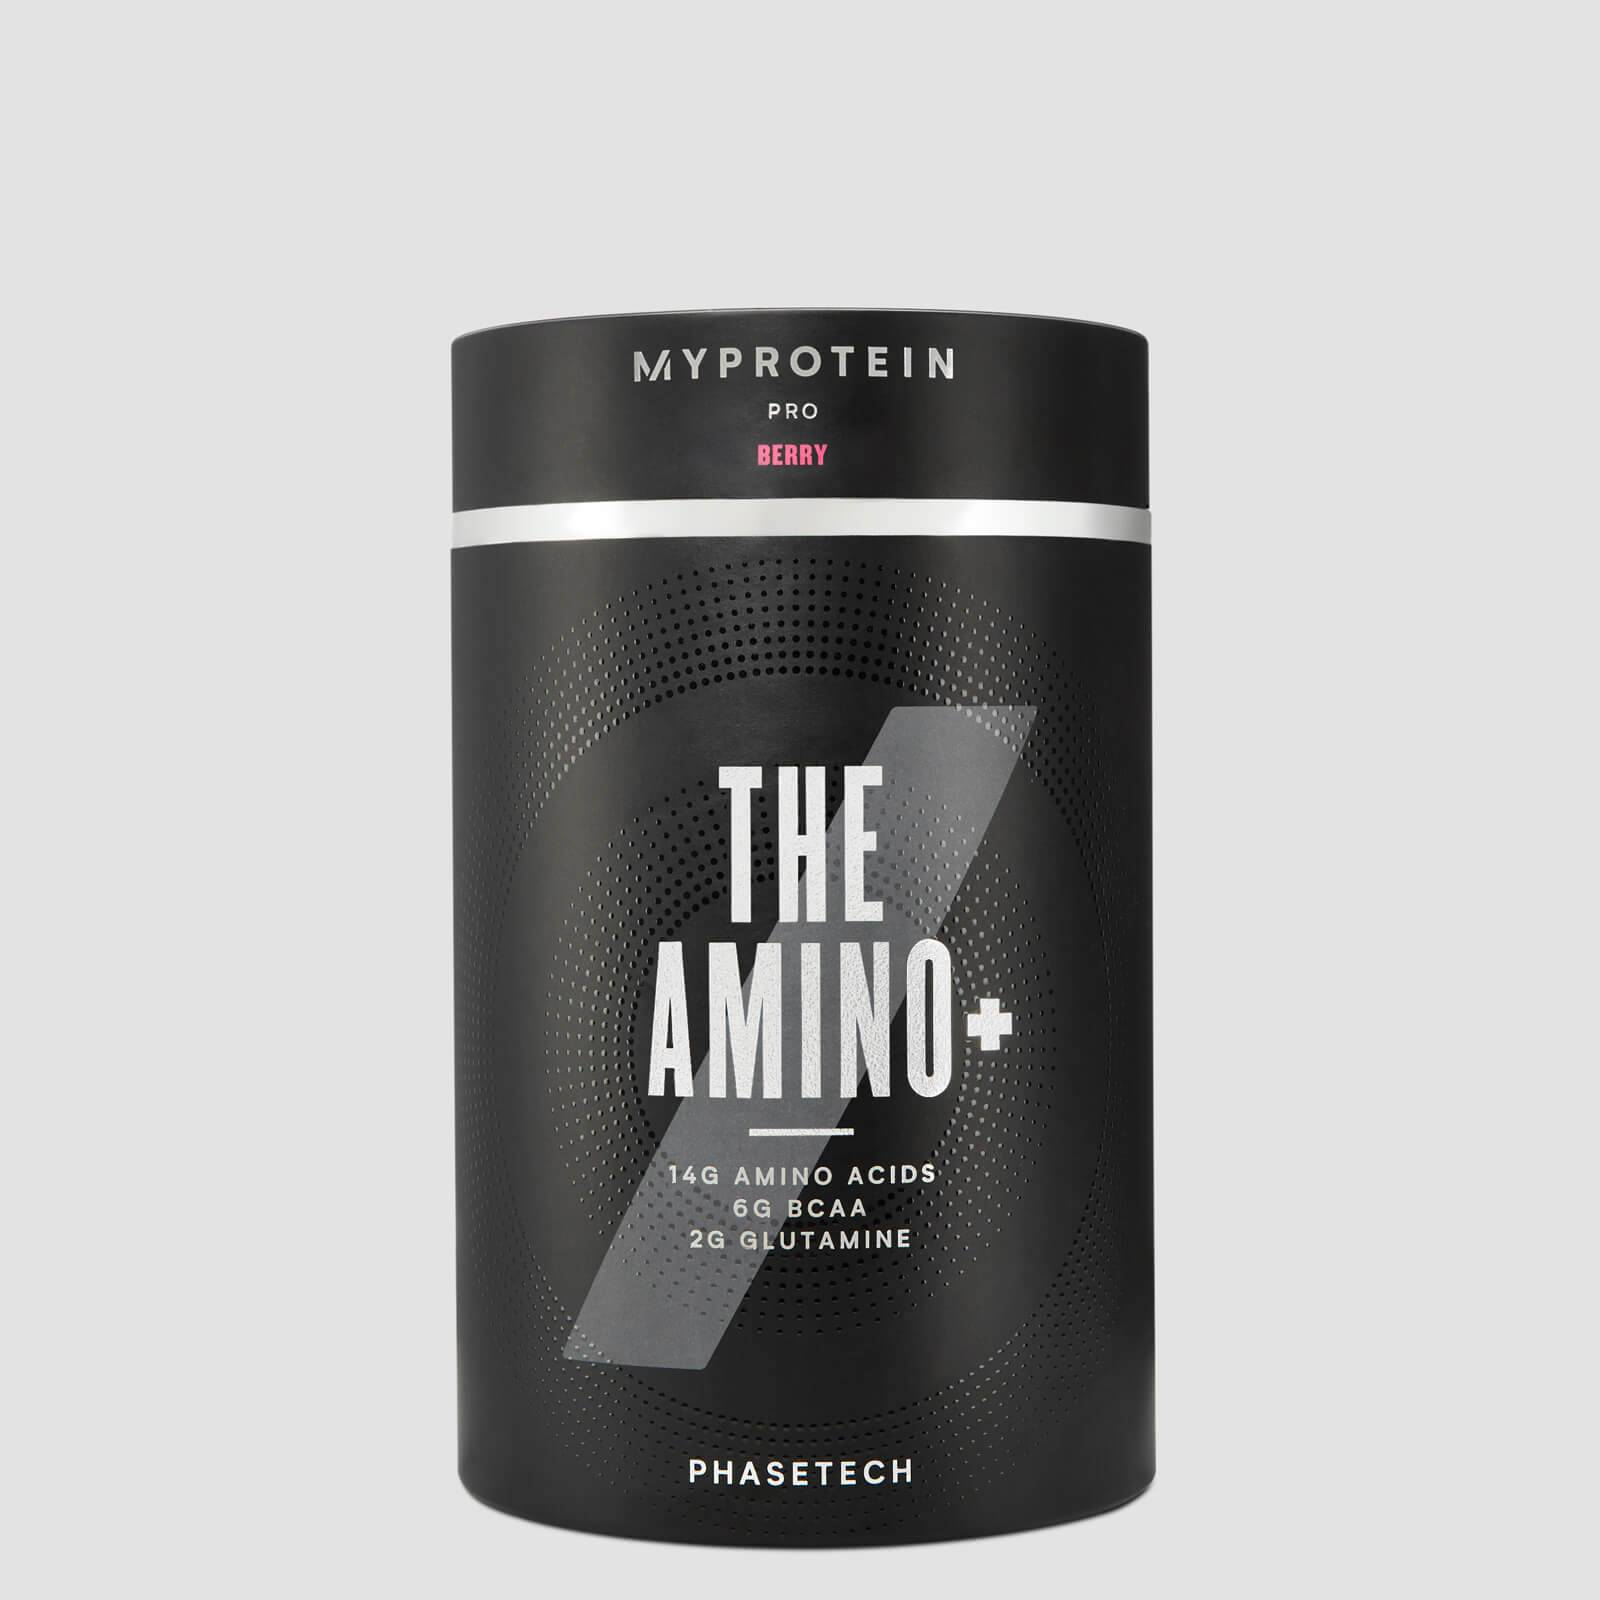 Myprotein THE Amino+ - 20servings - Bacche